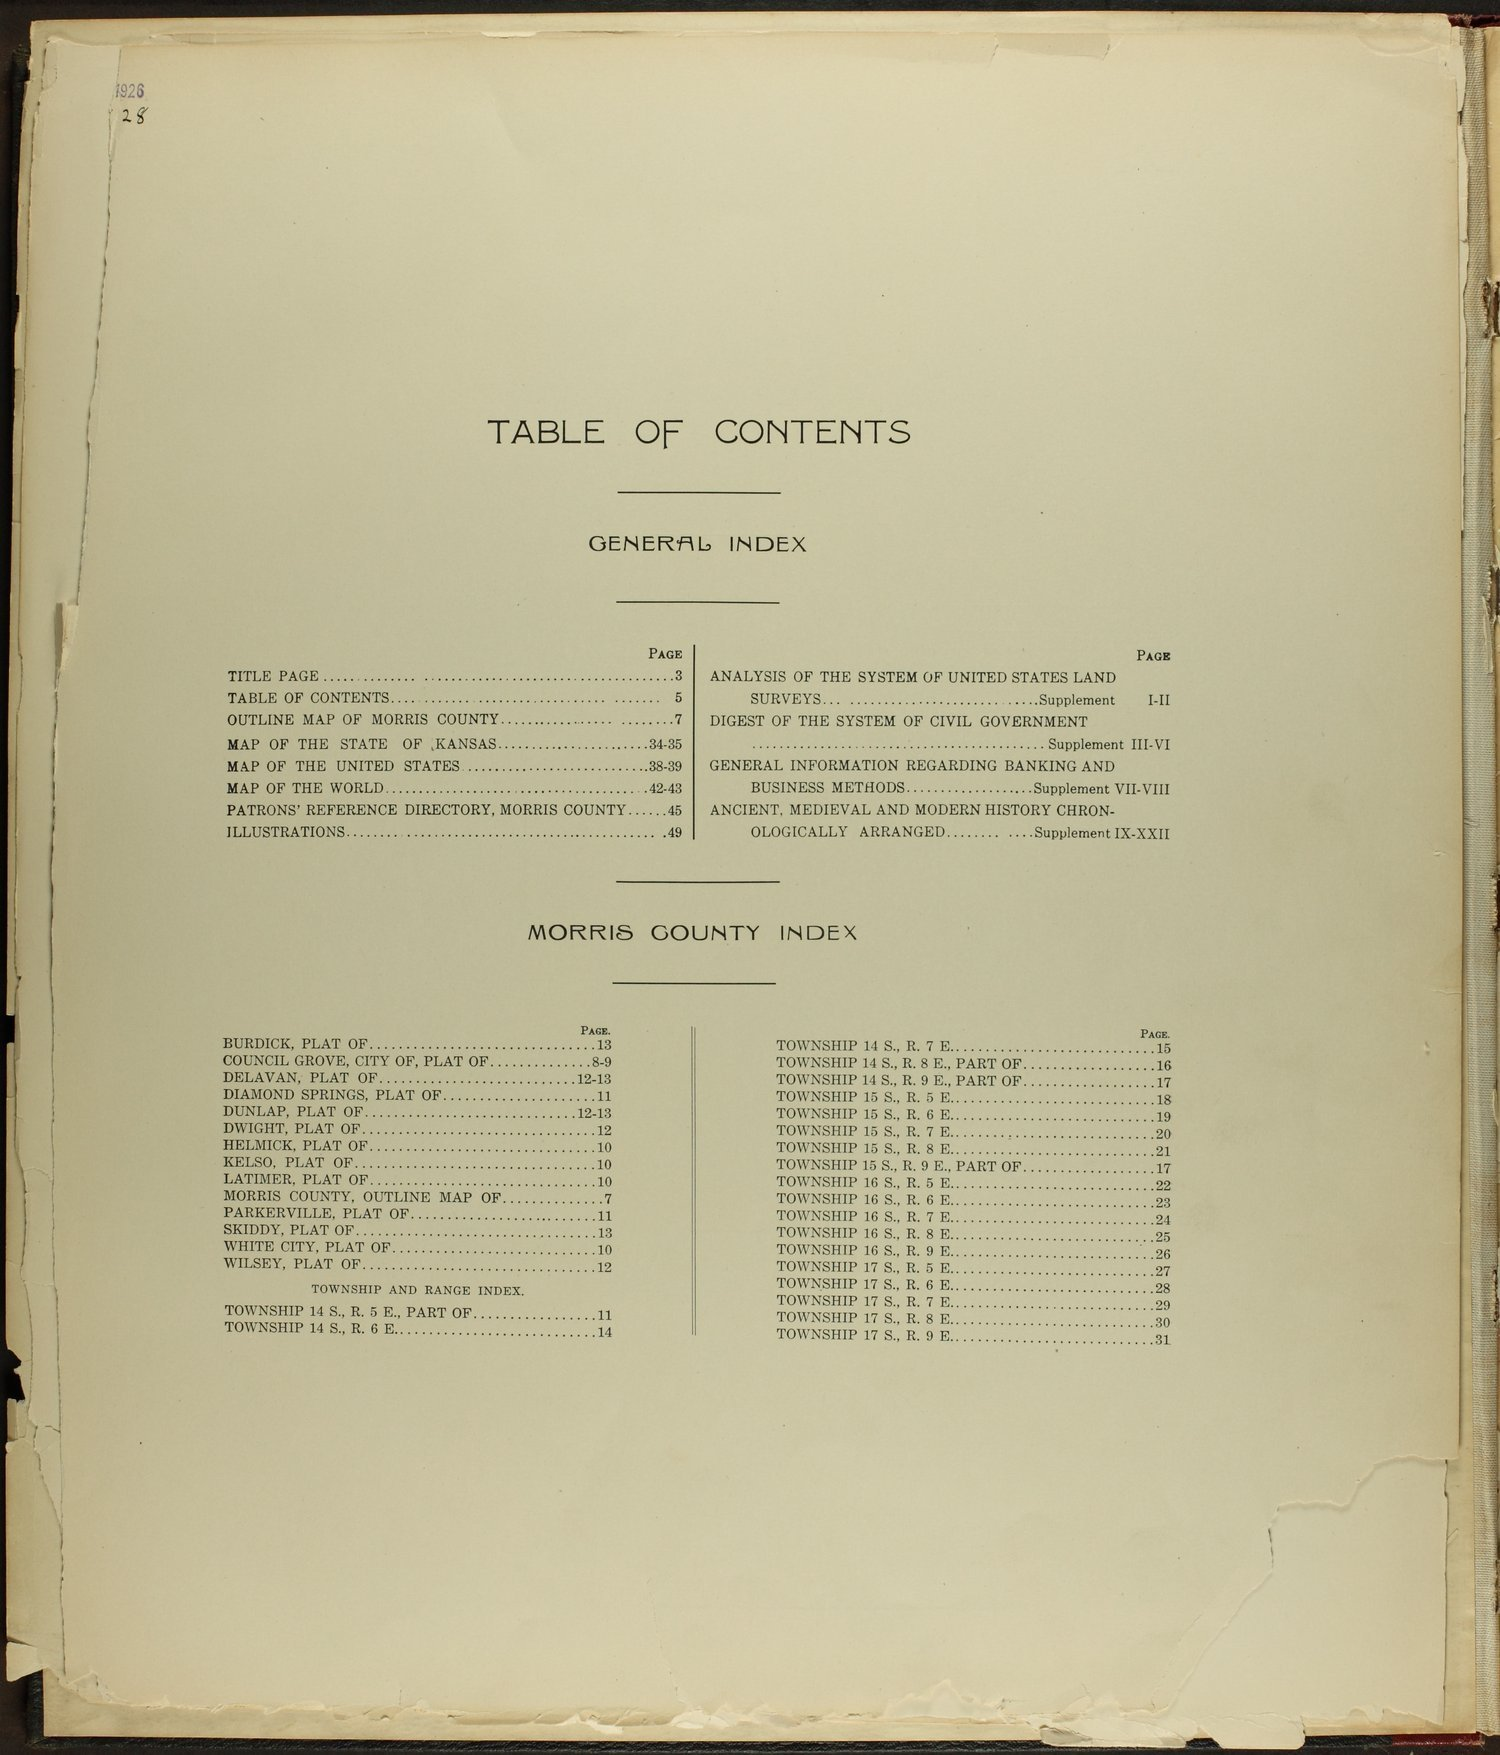 Standard atlas of Morris County, Kansas - Table of Contents